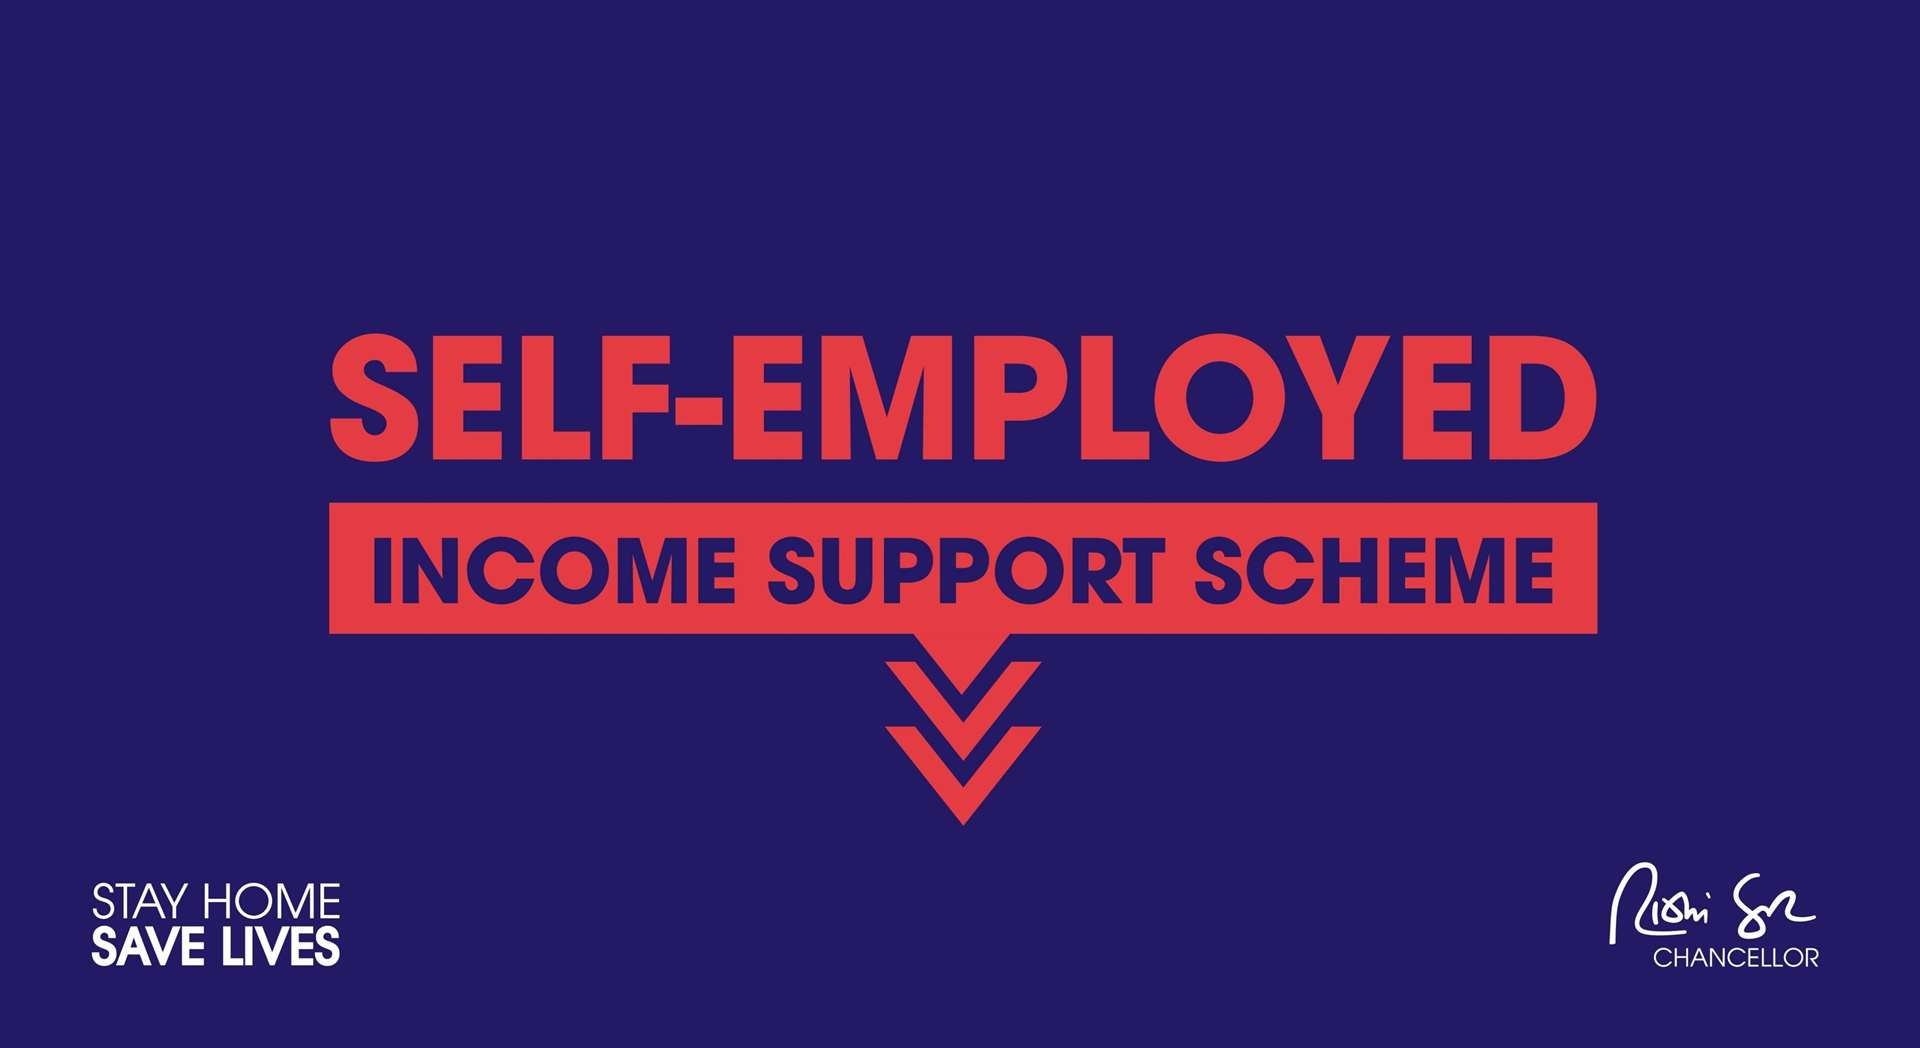 The government has announced a support scheme for the self-employed during the coronavirus crisis (32462398)